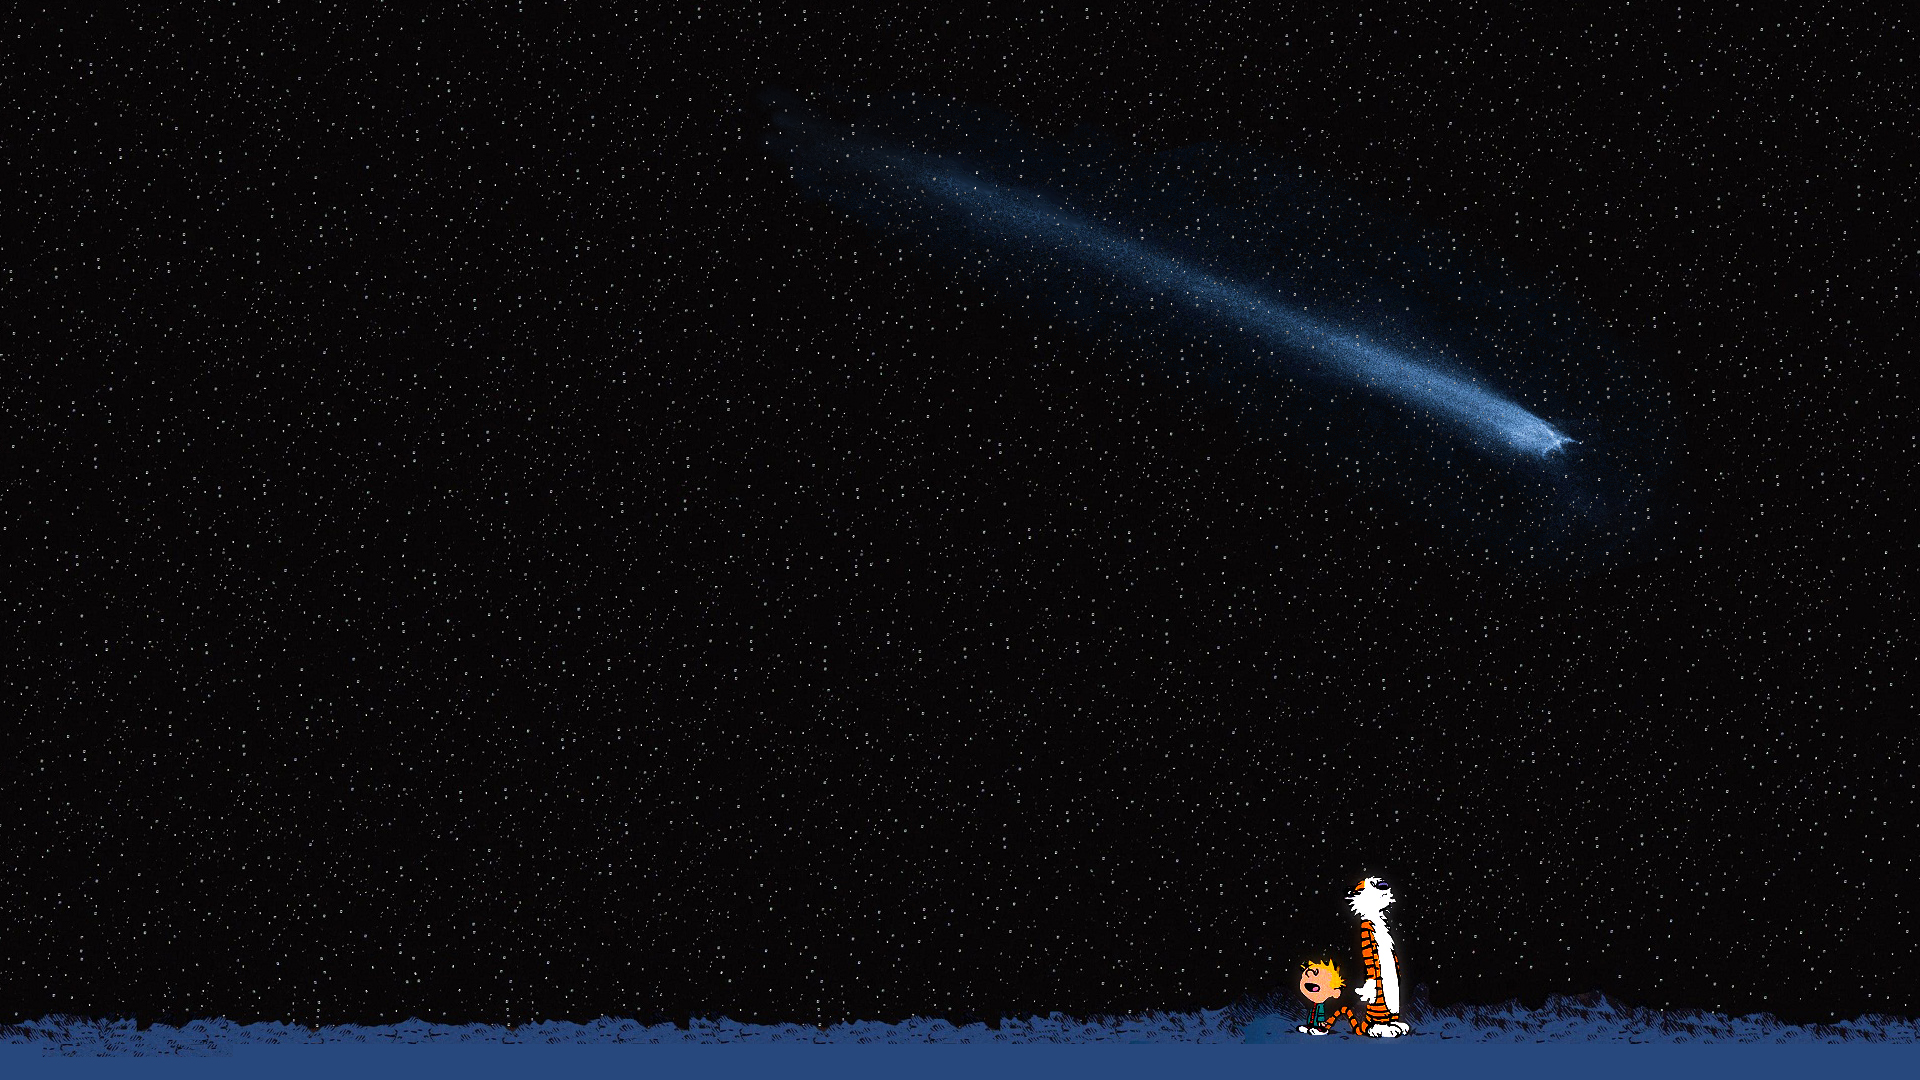 Calvin & Hobbes HD Wallpaper | Background Image | 1920x1080 | ID:184318 - Wallpaper Abyss